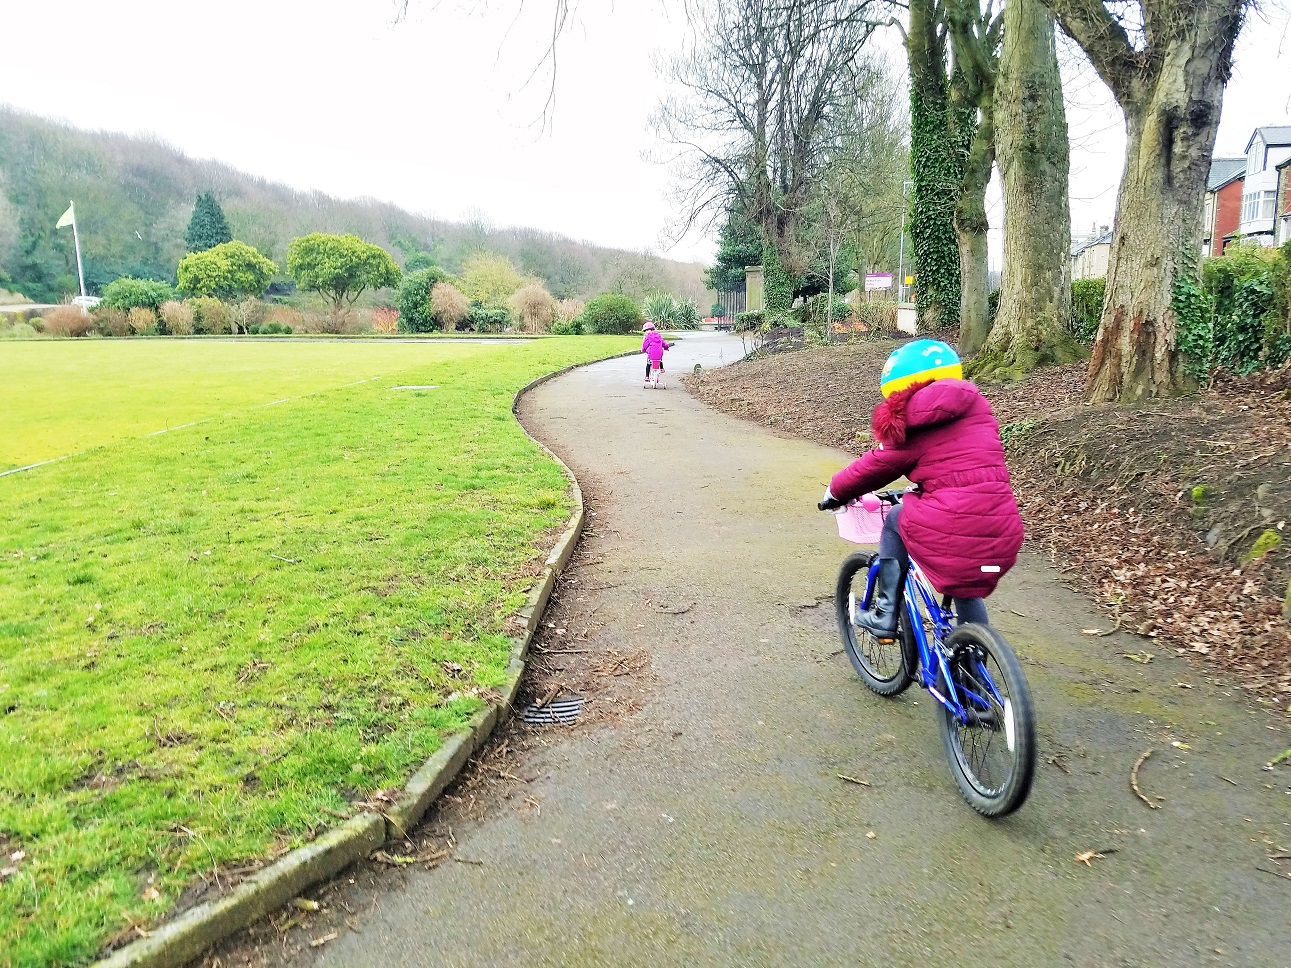 time out and respectful dscipline children racing on bikes